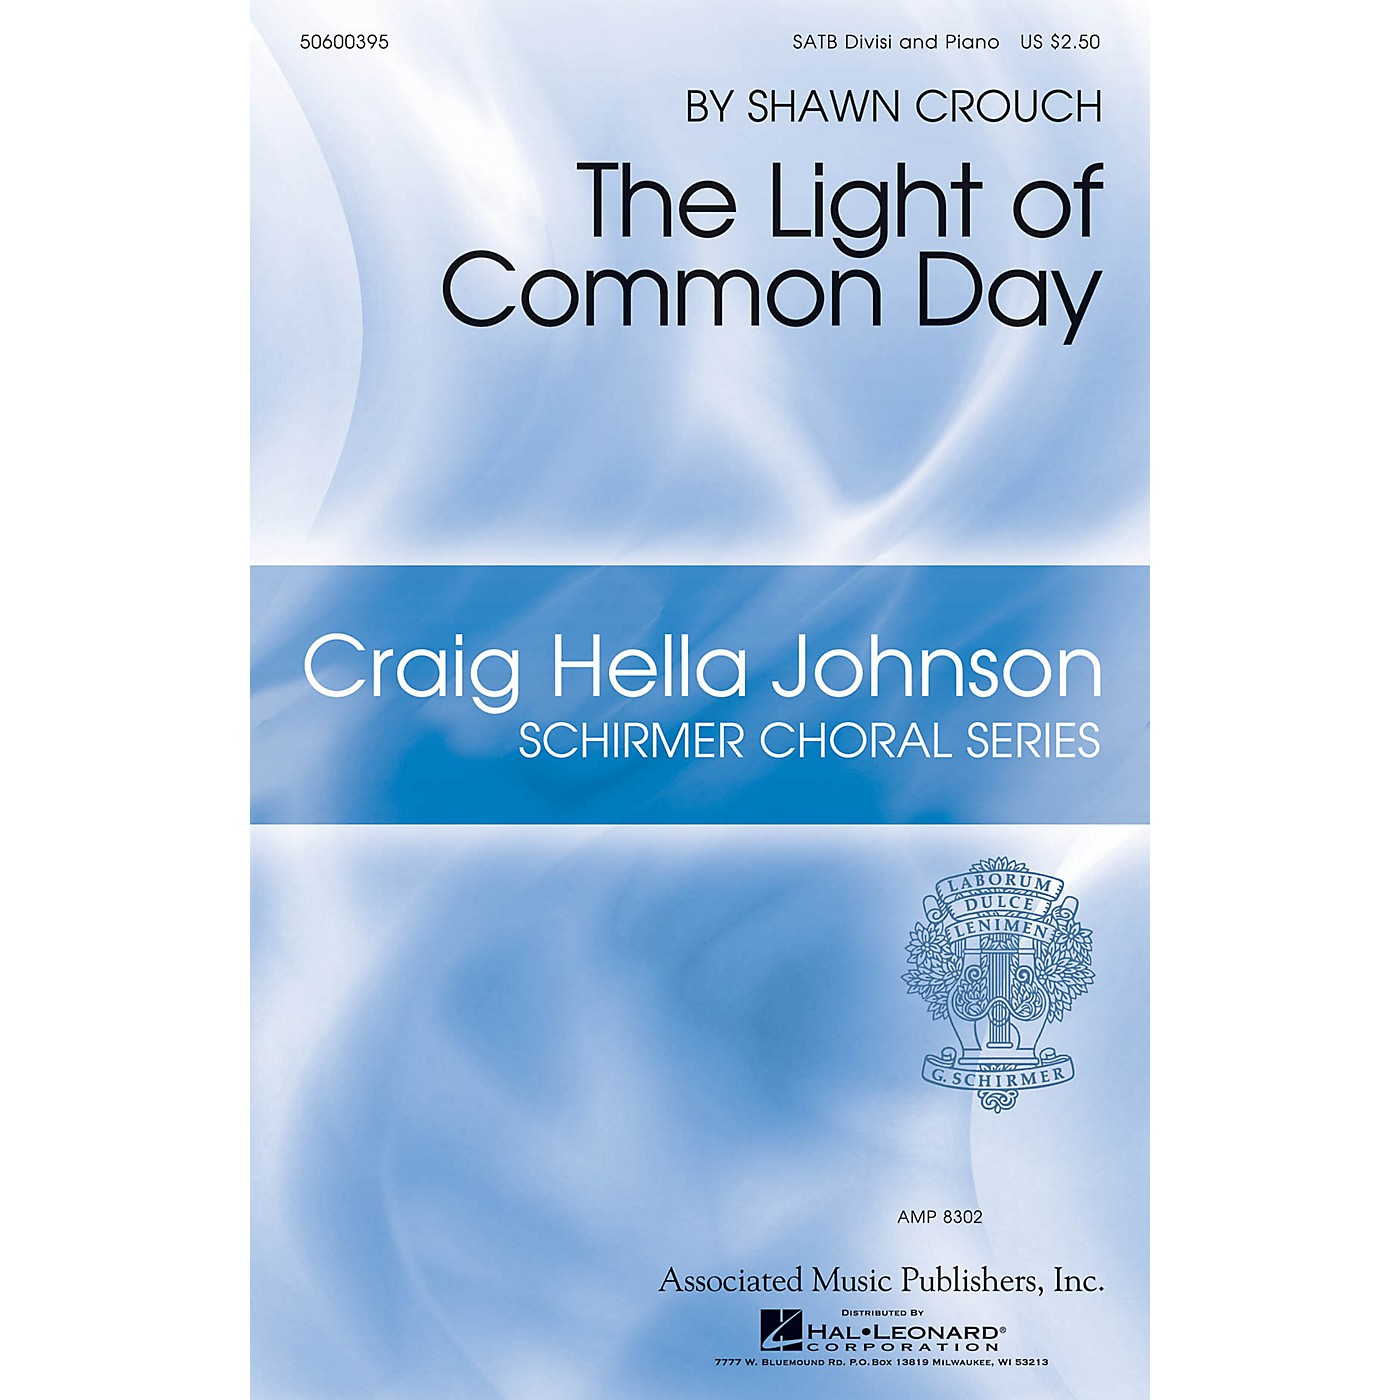 G. Schirmer The Light of Common Day (Craig Hella Johnson Choral Series) SATB composed by Shawn Crouch thumbnail